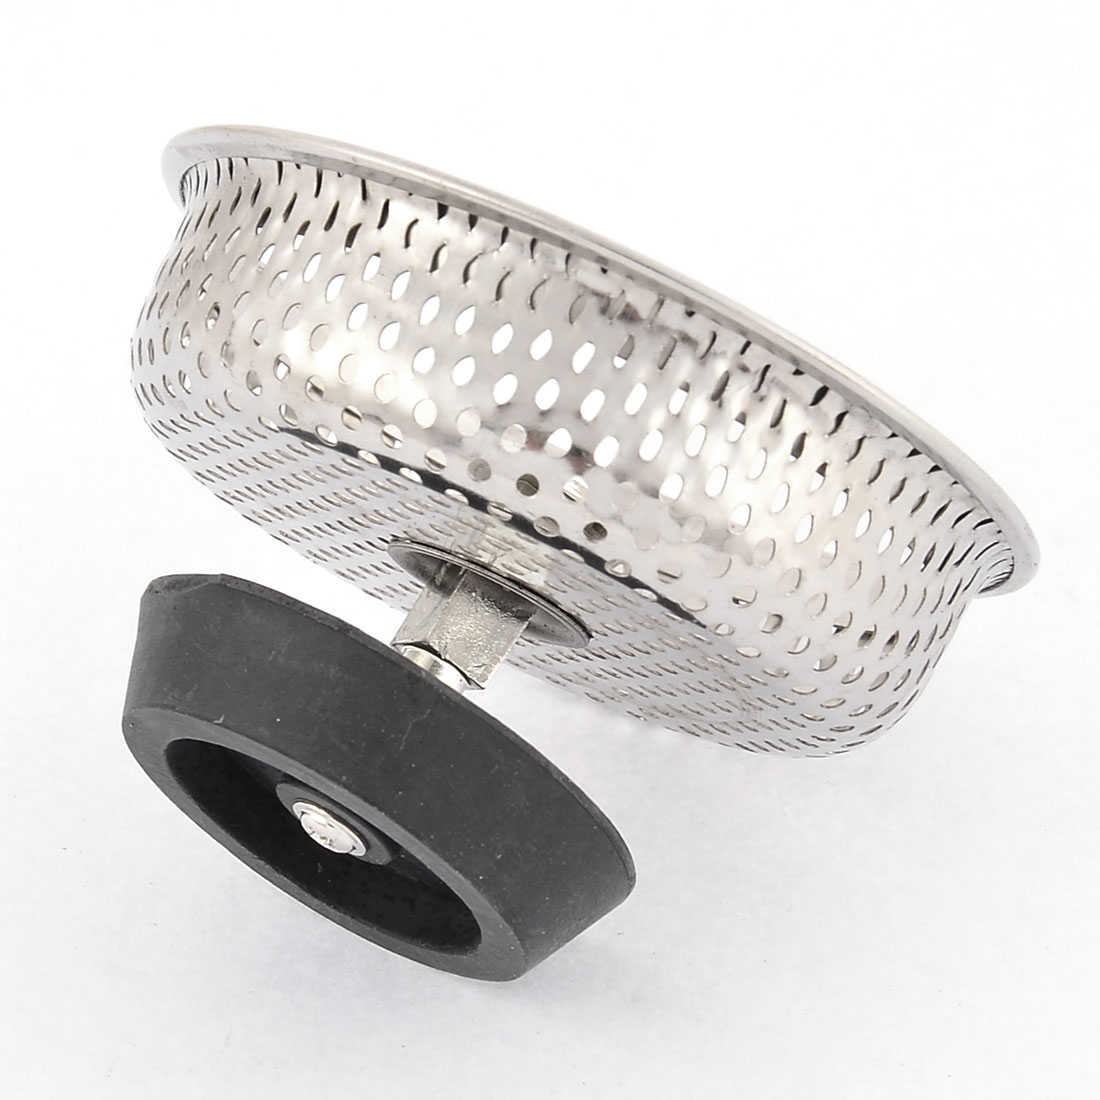 Unique Bargains Kitchen Bathroom Sink Drain Strainer Screen Stopper Metal Filter Basket 83mm Dia